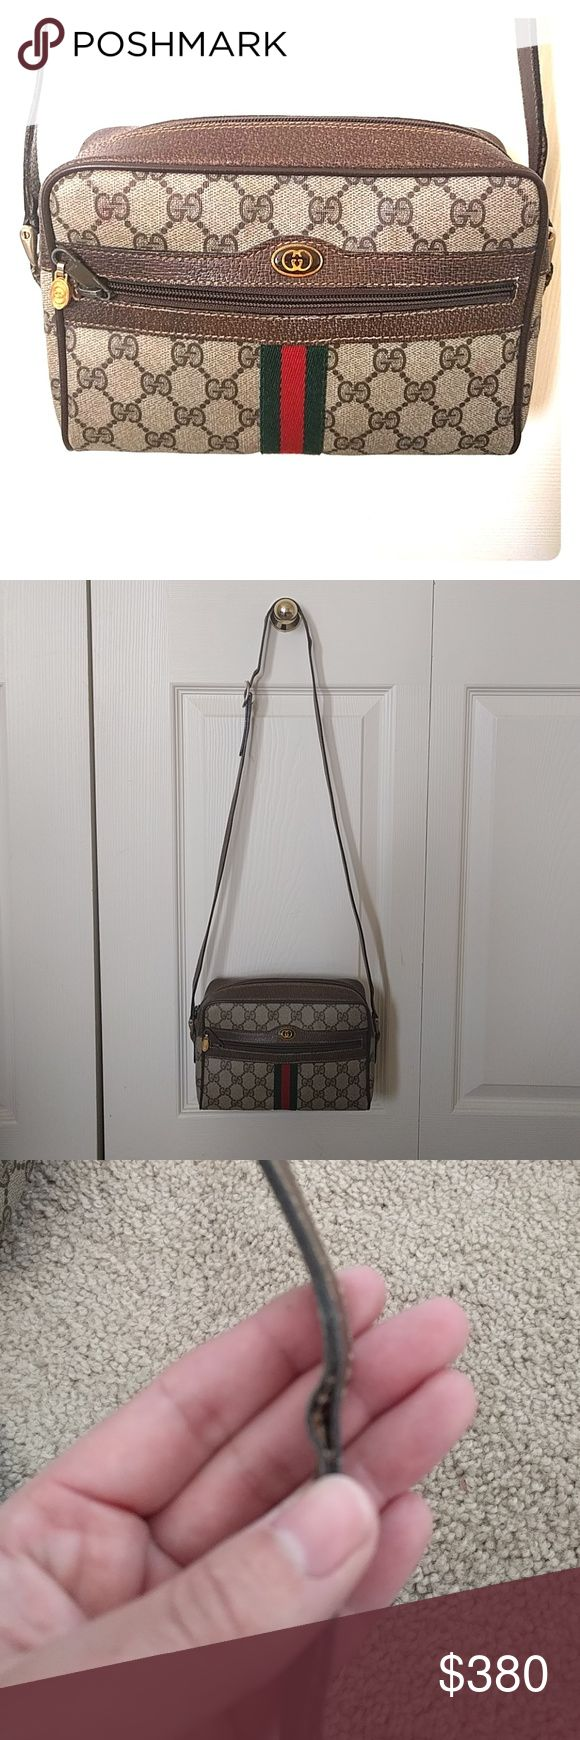 Vintage Gucci Crossbody Bag **Fixed Price** Gorgeous vintage Gucci bag.  Crossbody style.  Stitching coming apart on main strap due to age. See photos.  This is a well used bag but still in good condition. Zips all work and no rips or tears on main body of bag.  Inside a little dirty, again due to age and use.  This is in VINTAGE condition and NOT like a new bag.  Price is firm as don't really want to sell it but needs must! Gucci Bags Crossbody Bags